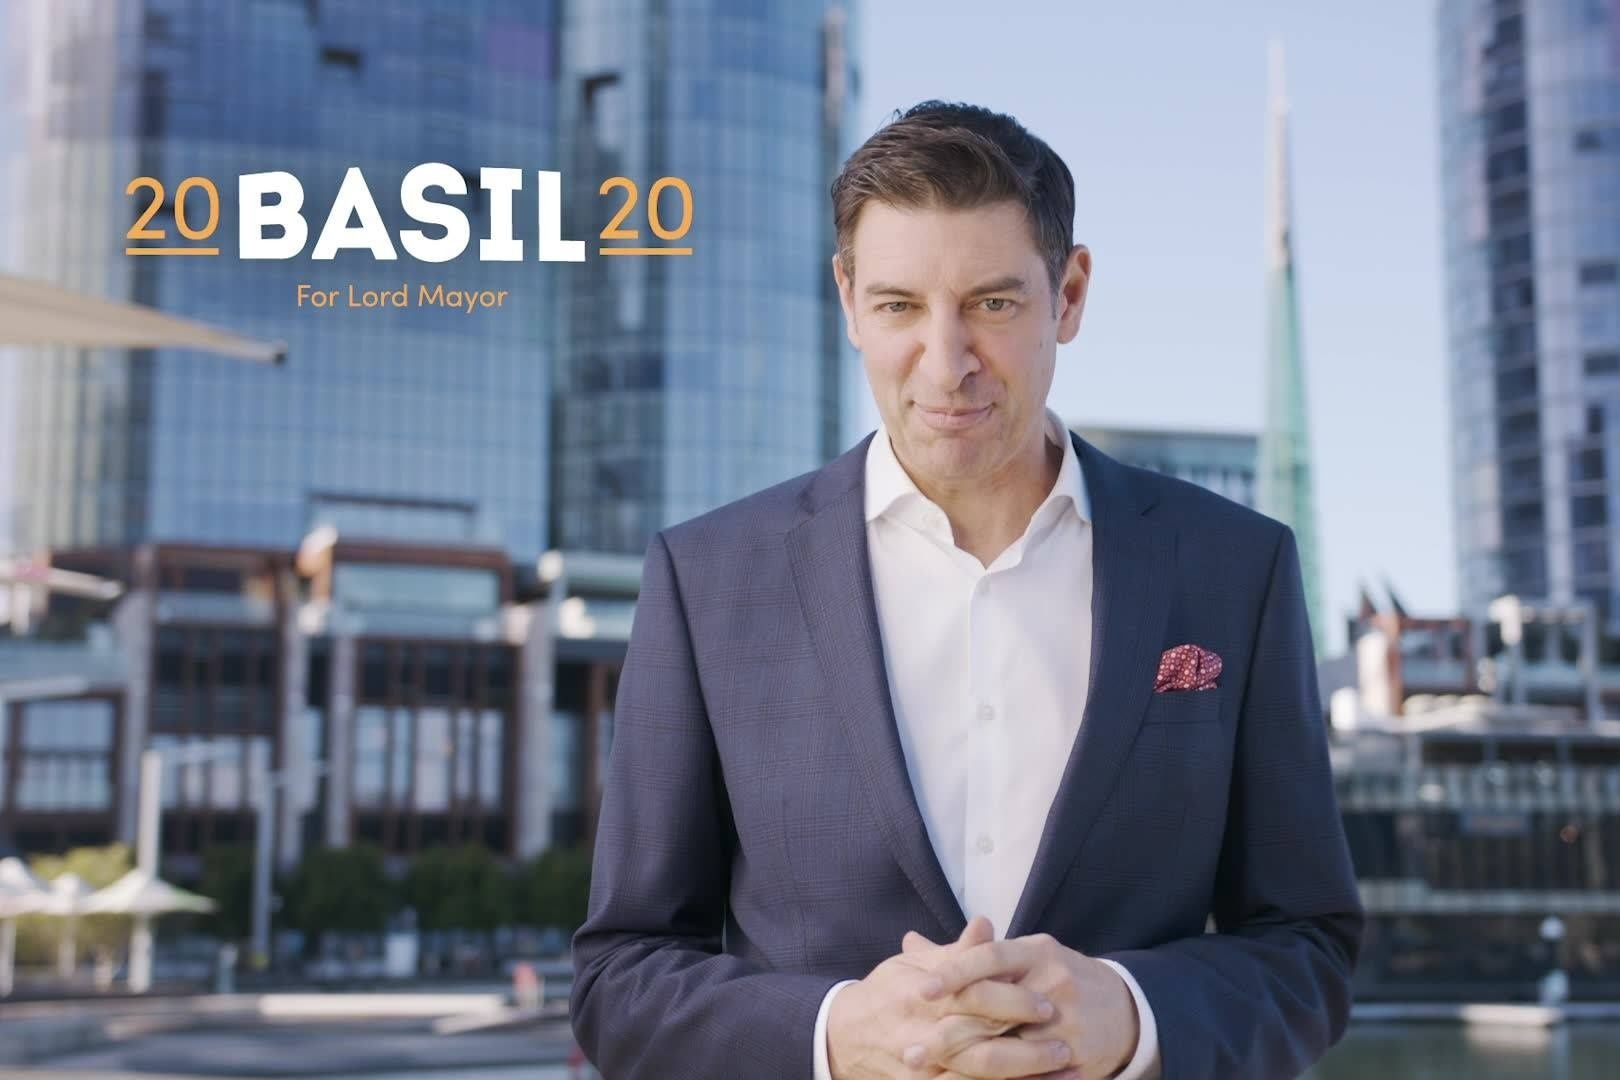 Basil Zempilas on his run for Lord Mayor